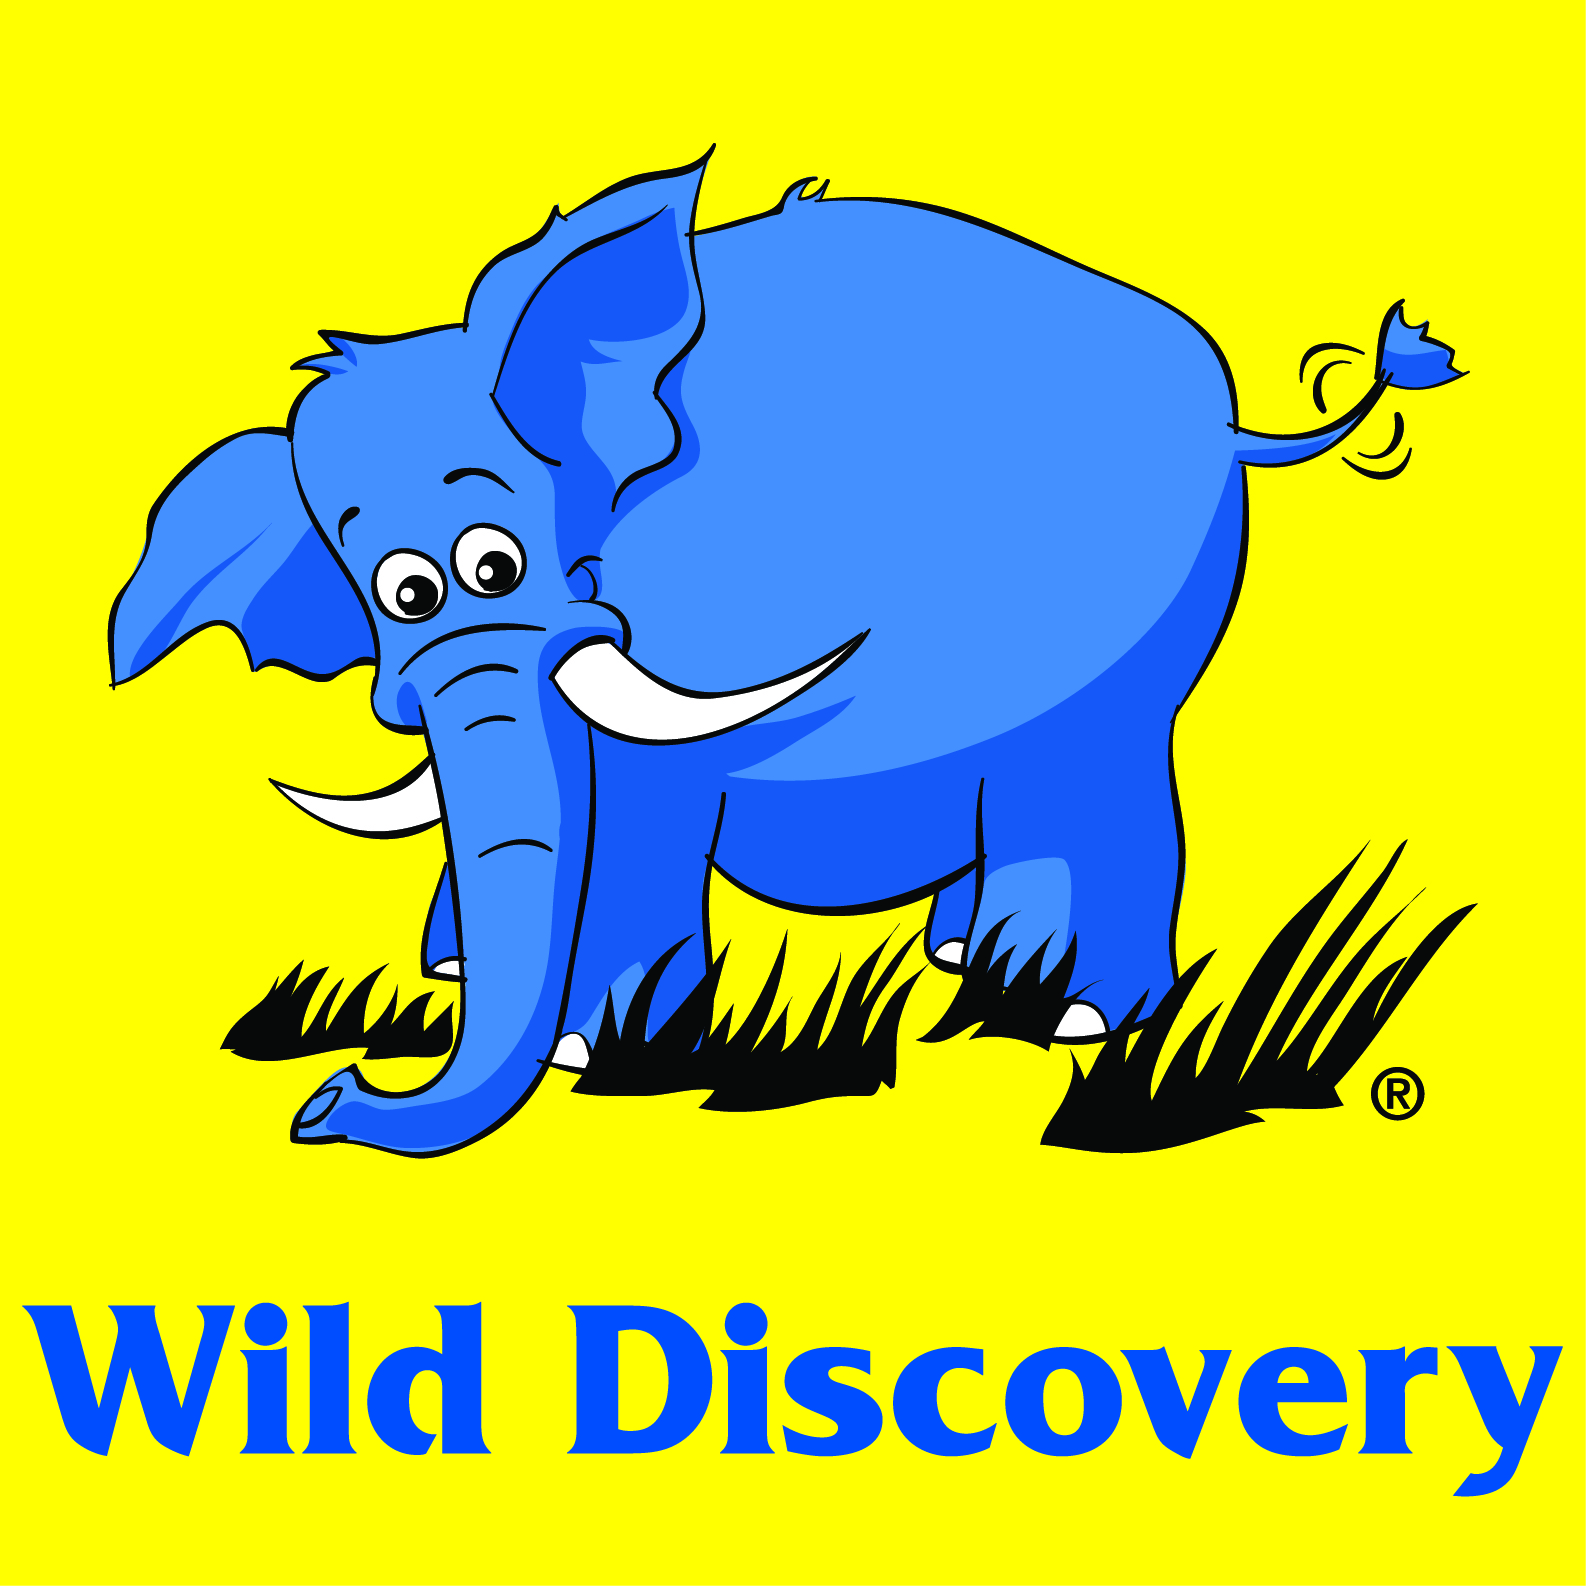 Wild Discovery Enters The ABC Travel Privileges Program